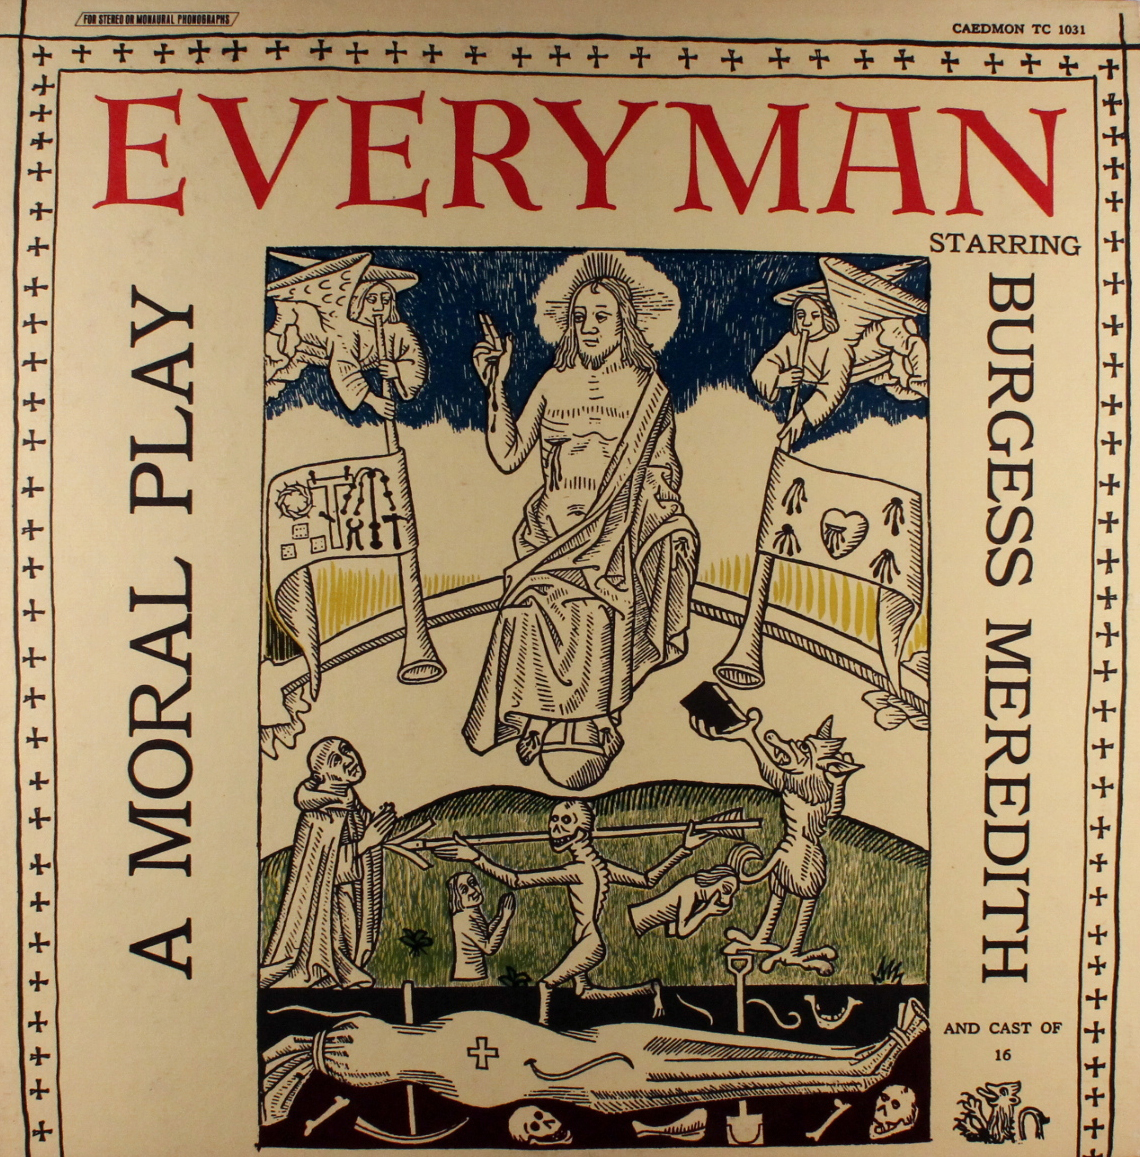 everyman morality play essay questions Morality play essay and the questions and contradictions thrown up by a changing world order now morality play fun with everyman the play.